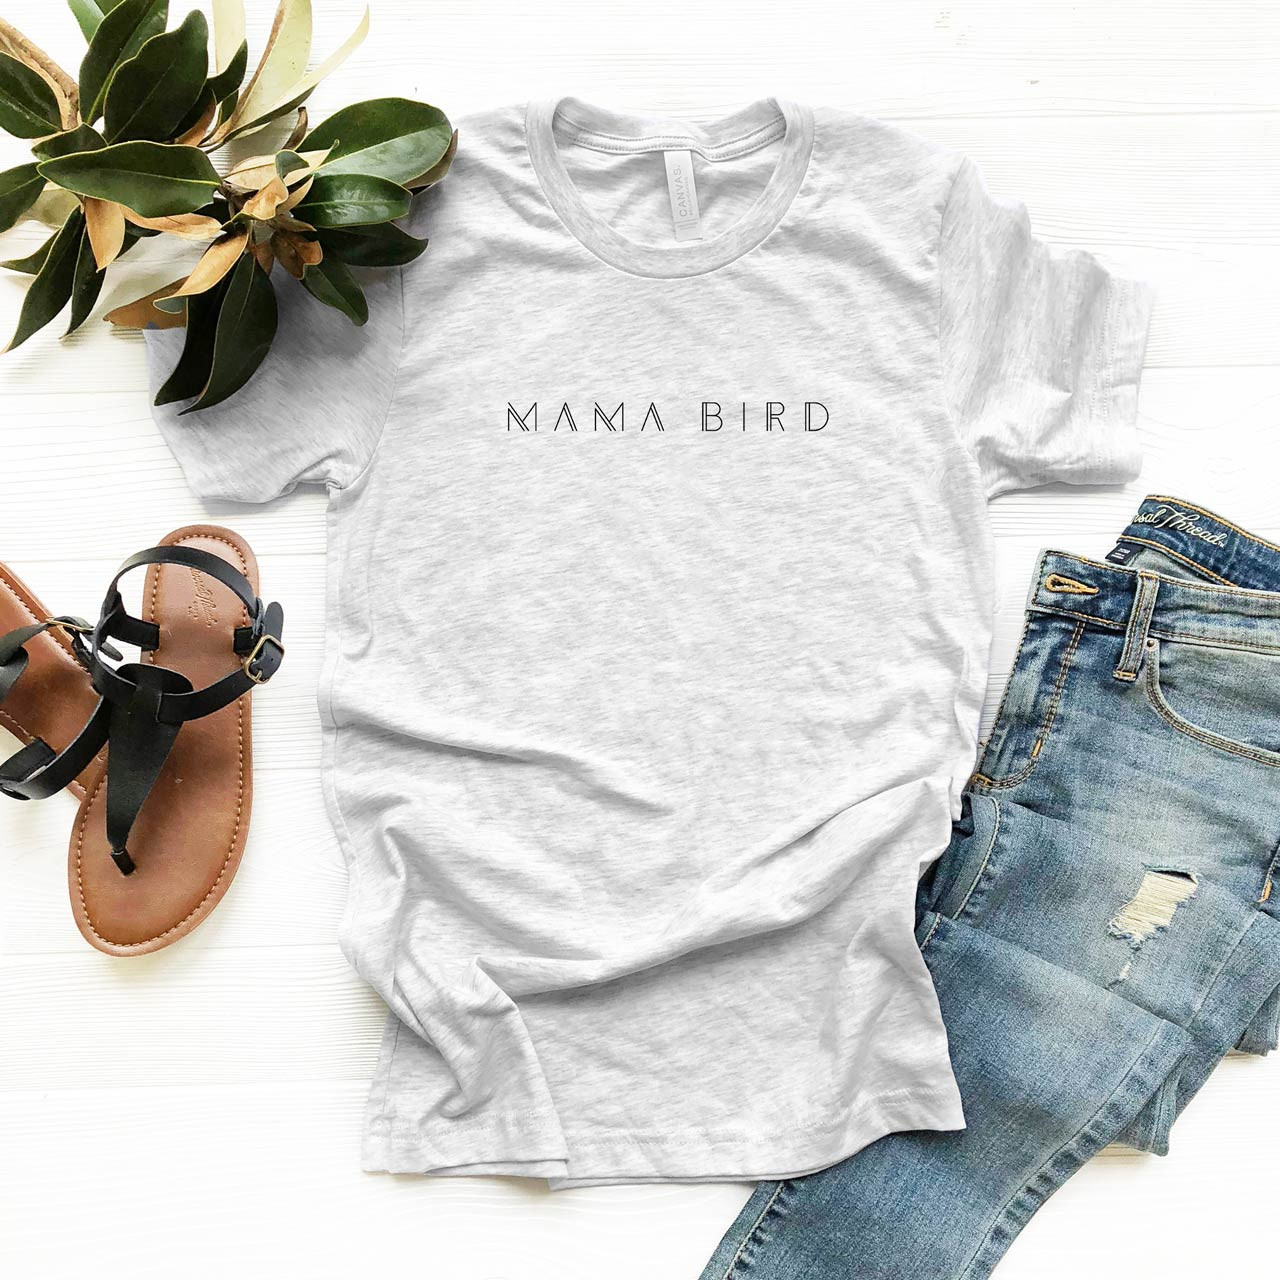 MAMA BIRD Vintage T-Shirt (Black on Light Gray Fleck) from The Printed Home